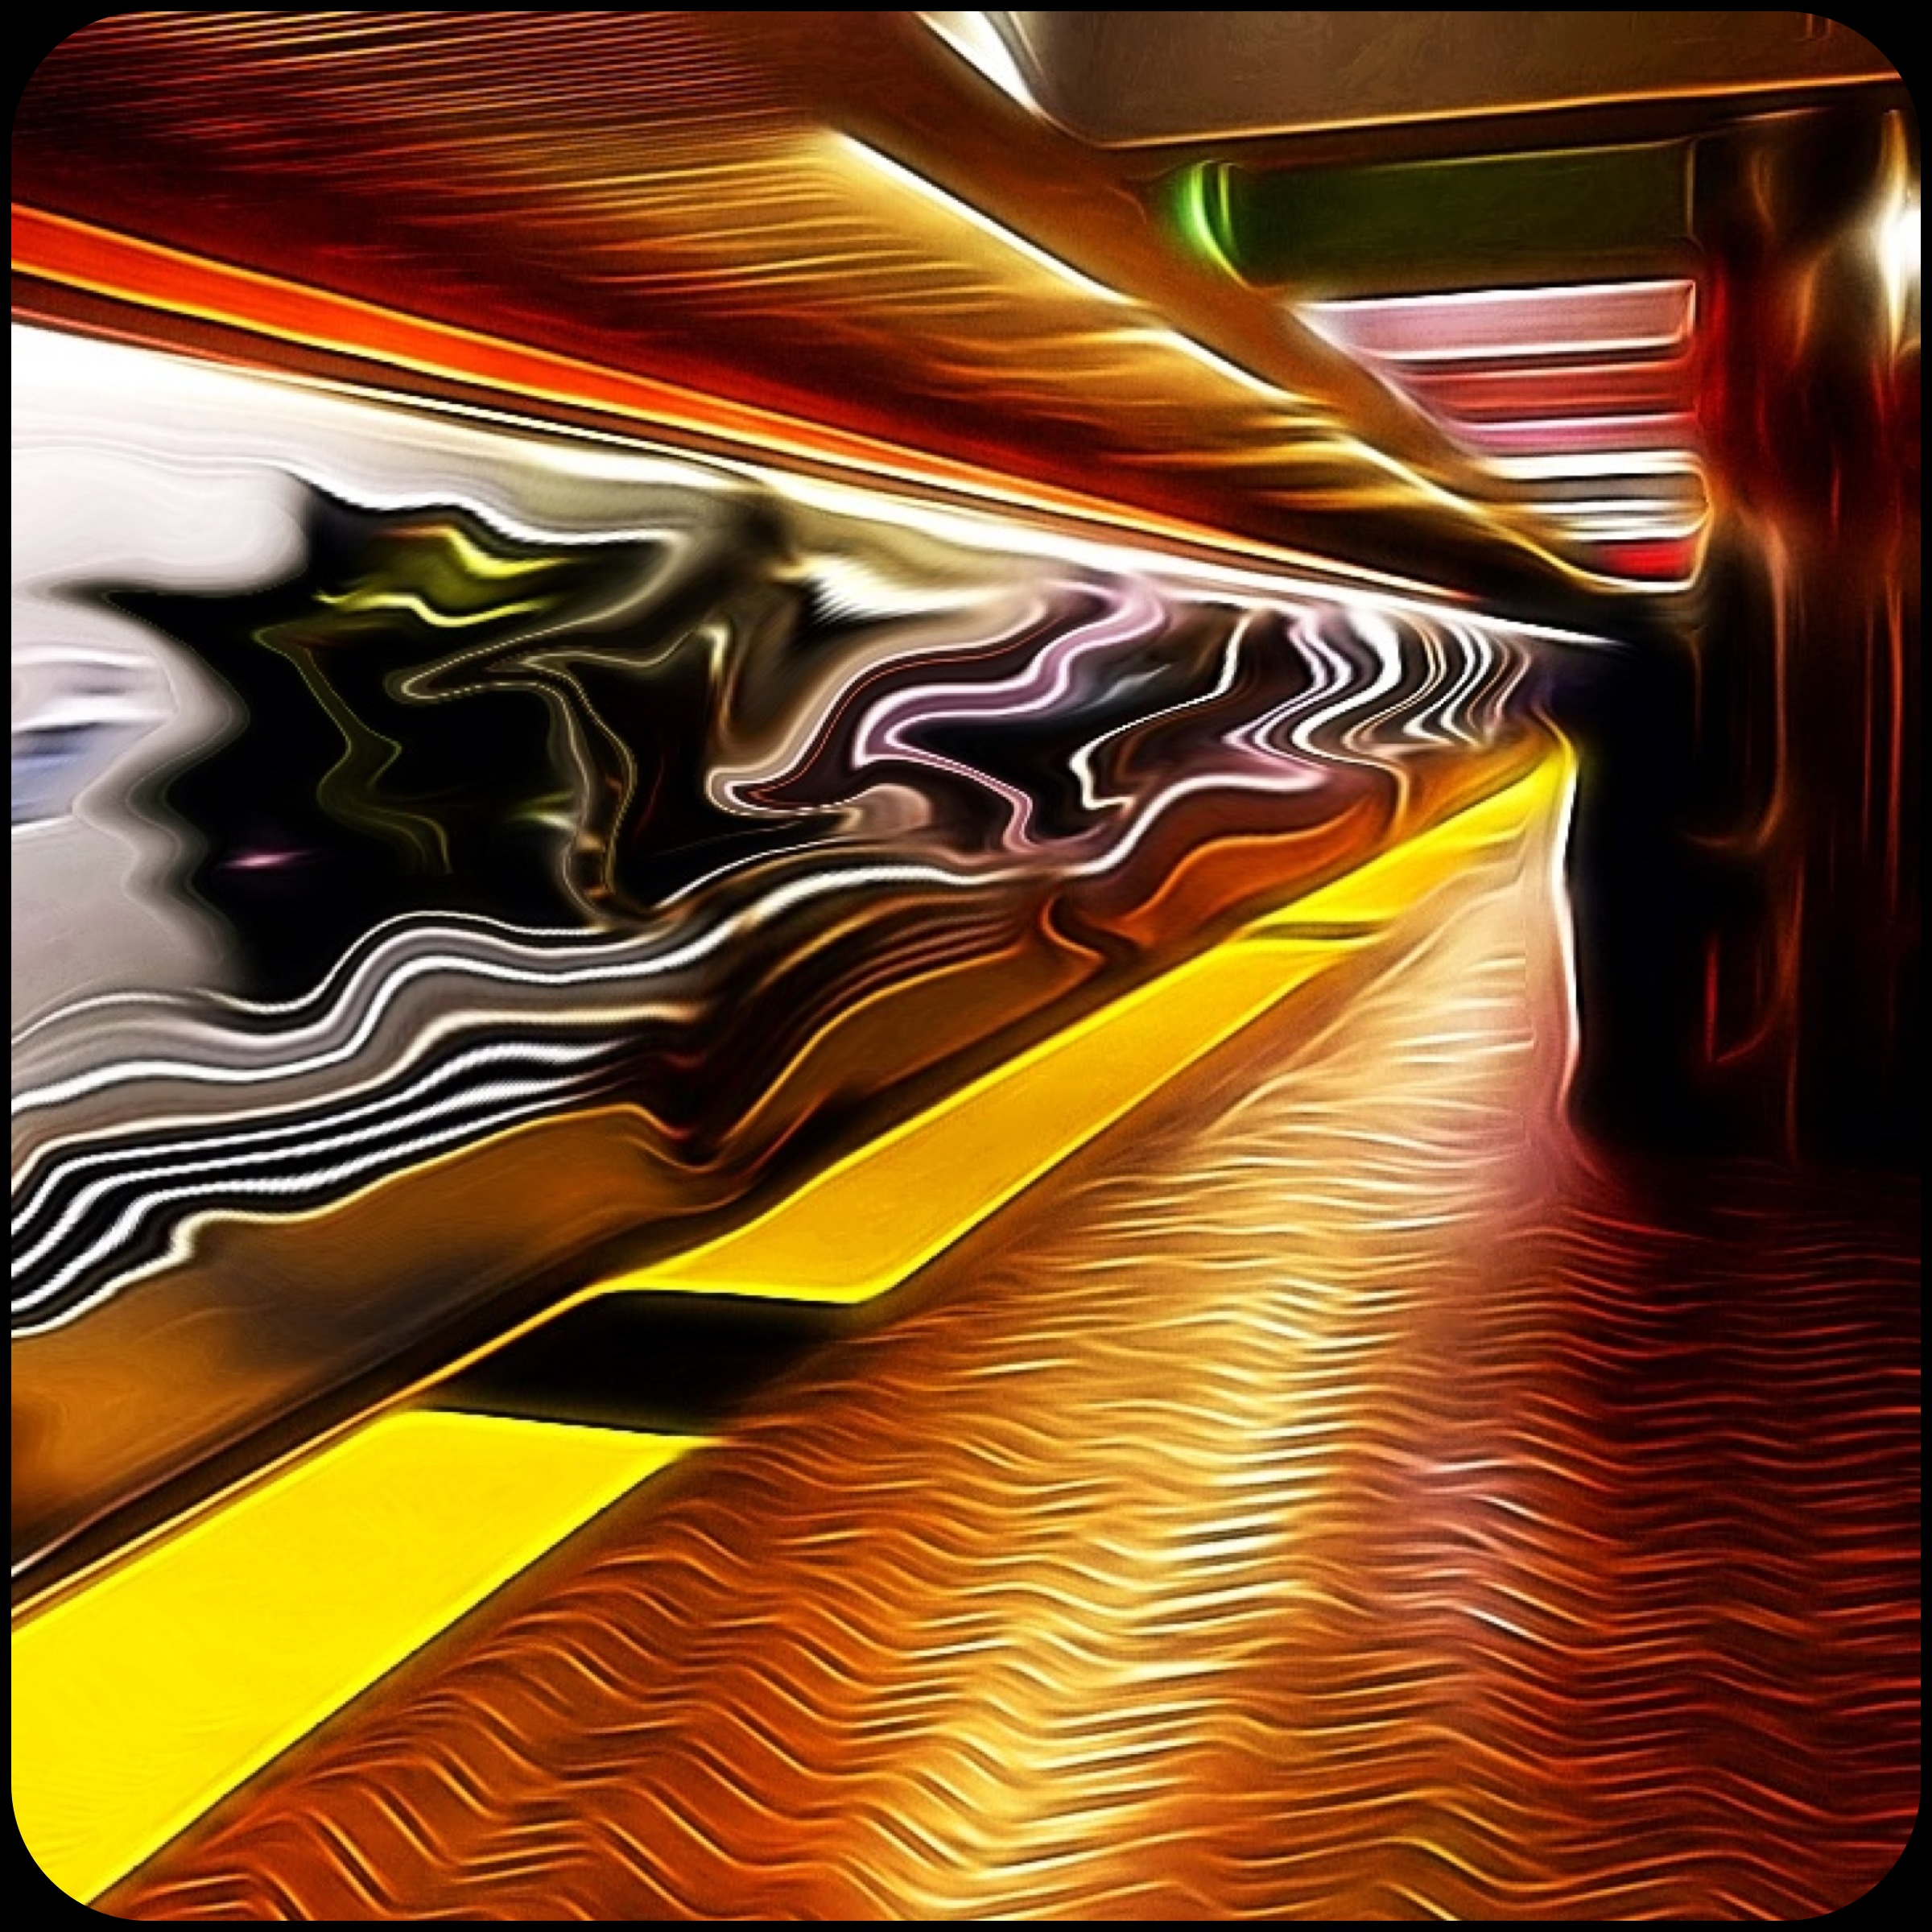 Warped Speed - at the Powell St. BART Station